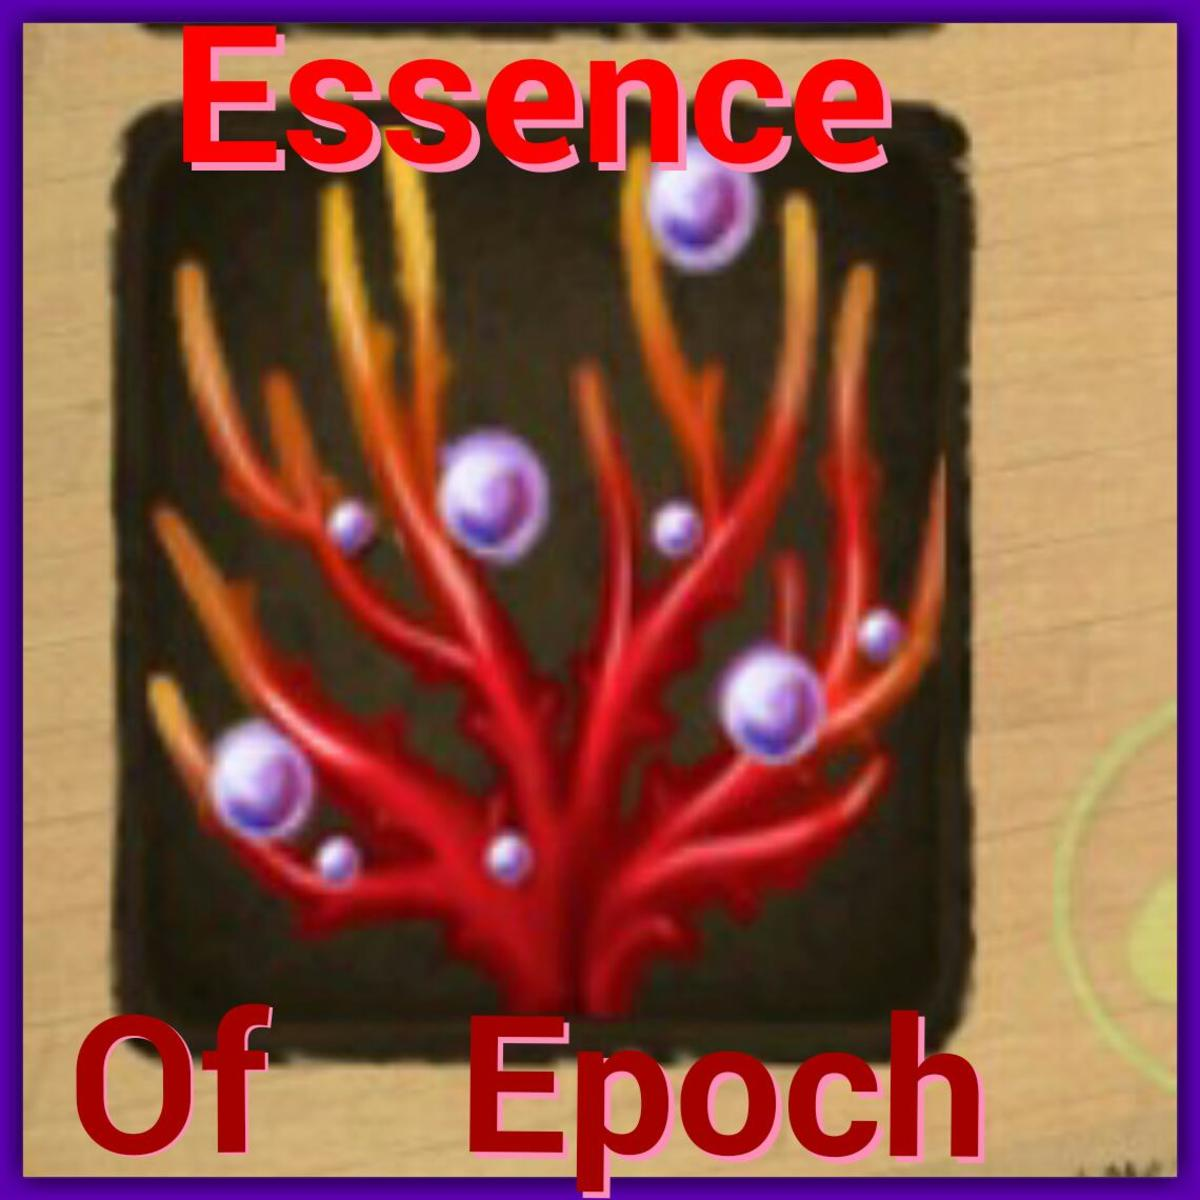 This is what an Essence Of Epoch looks like.